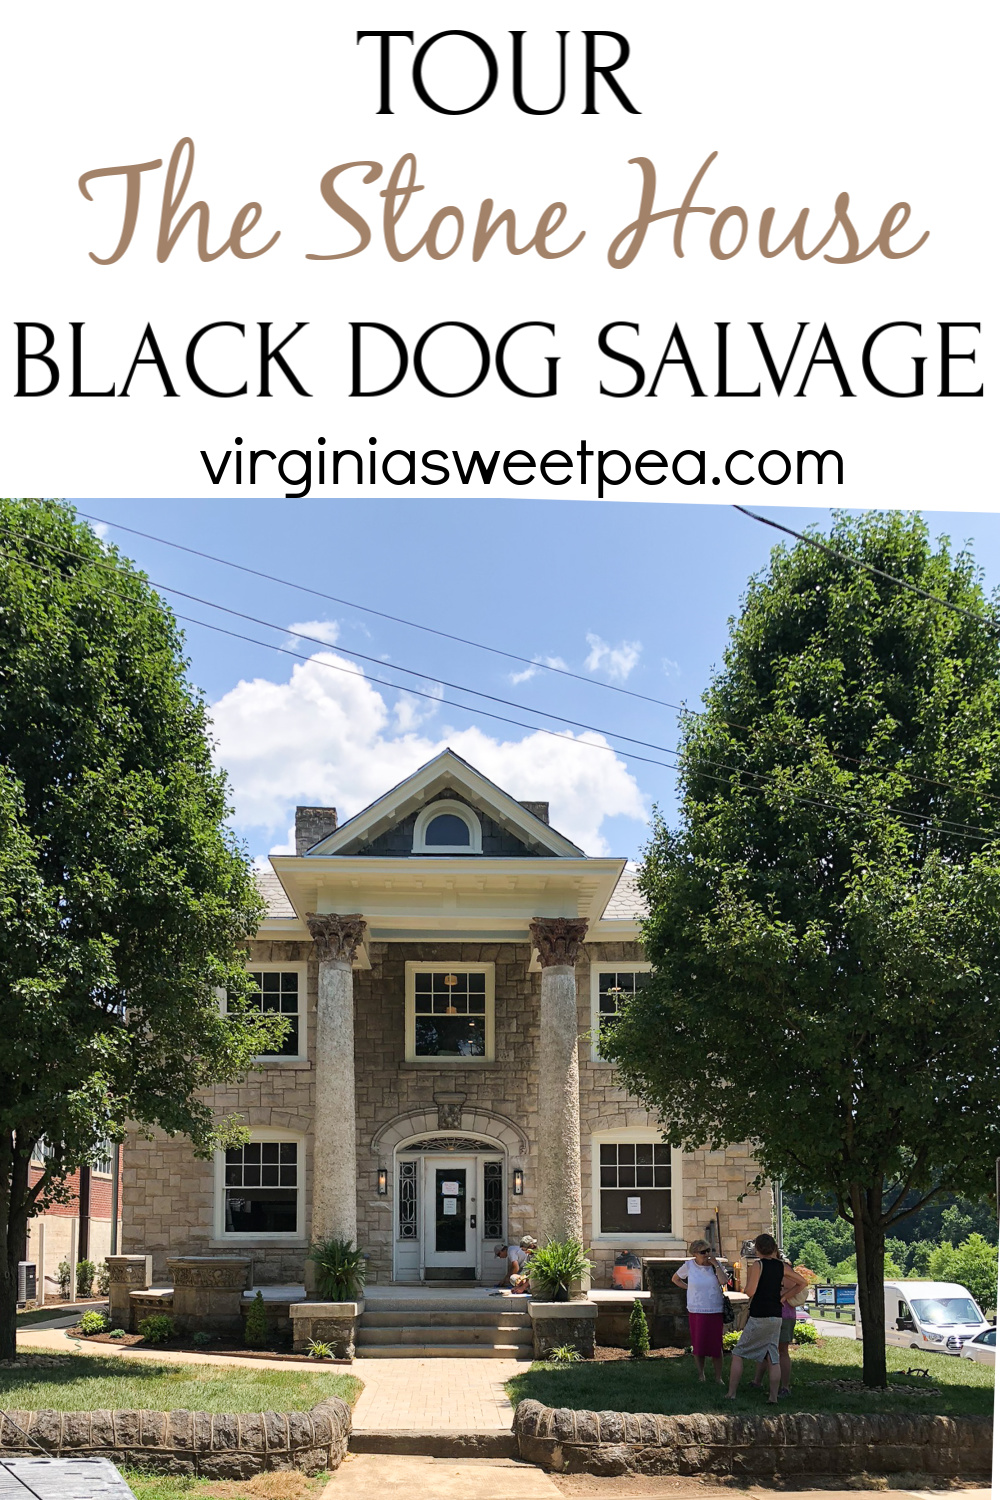 A Tour of The Stone House at Black Dog Salvage - Take a tour of this beautifully restored 1911 home in Roanoke, VA. #blackdogsalvage #hometour #historichome via @spaula